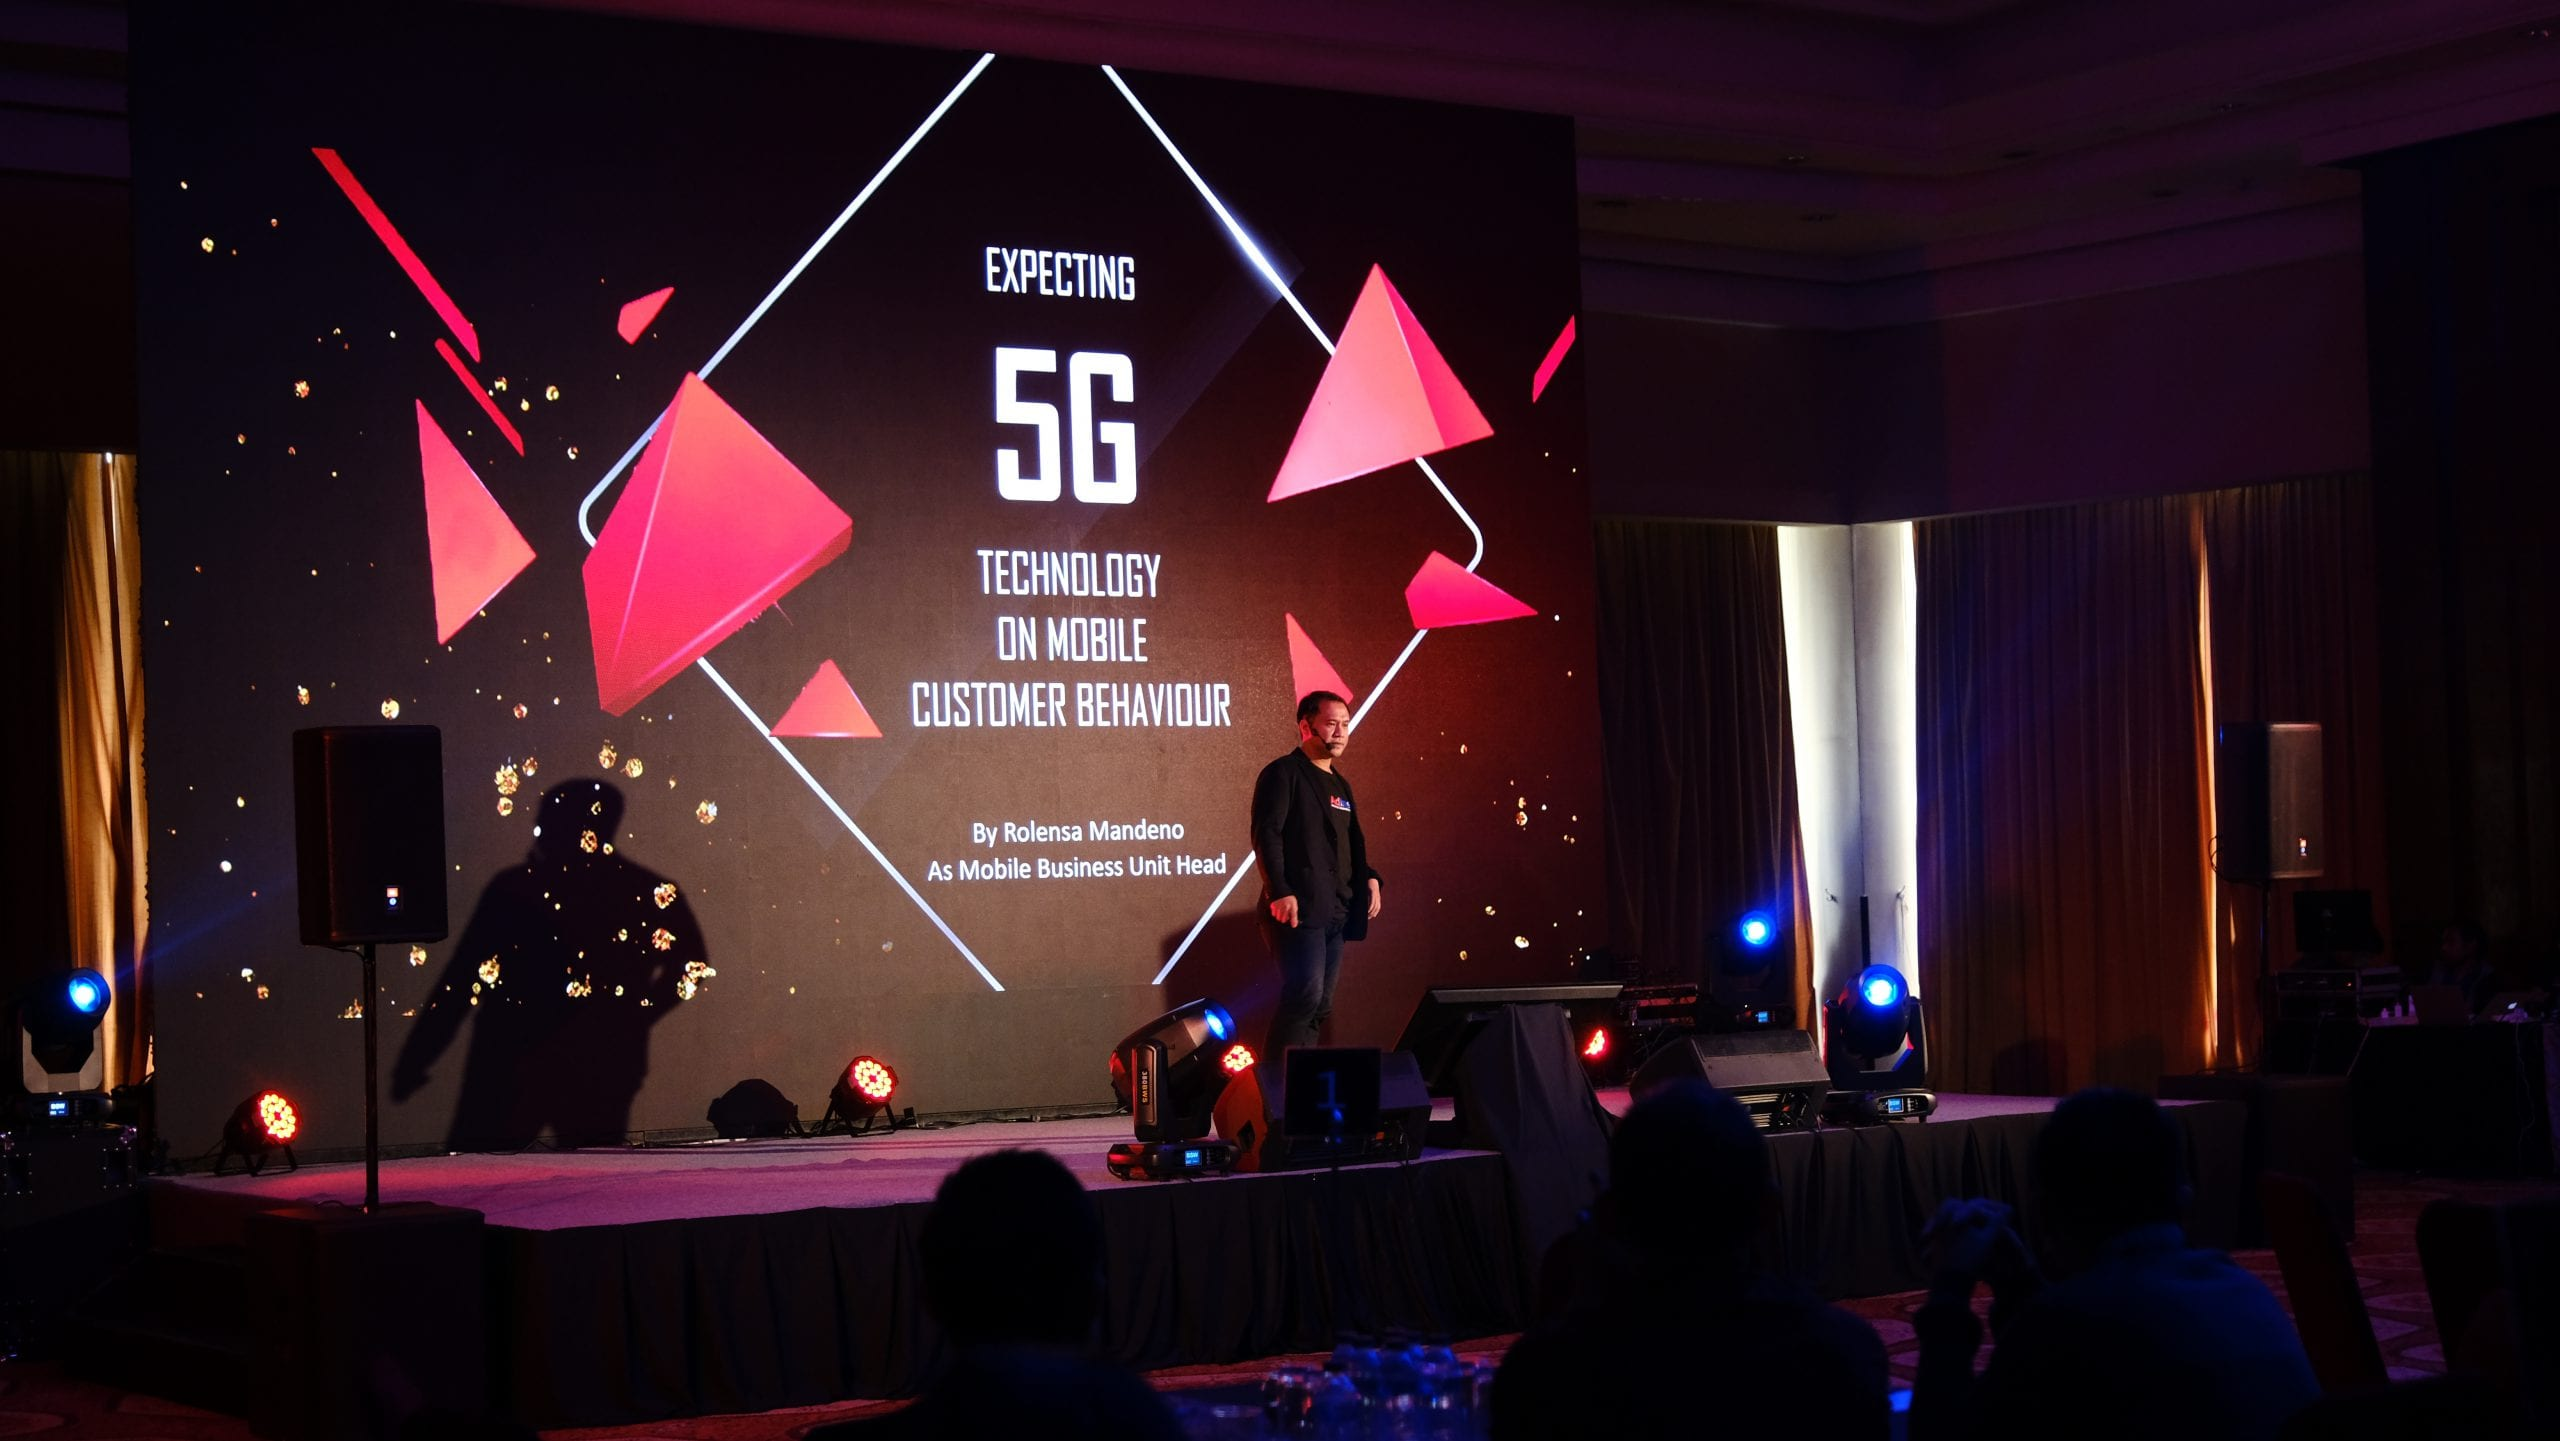 Dampak Teknologi 5G Pada Mobile Customer Behavior